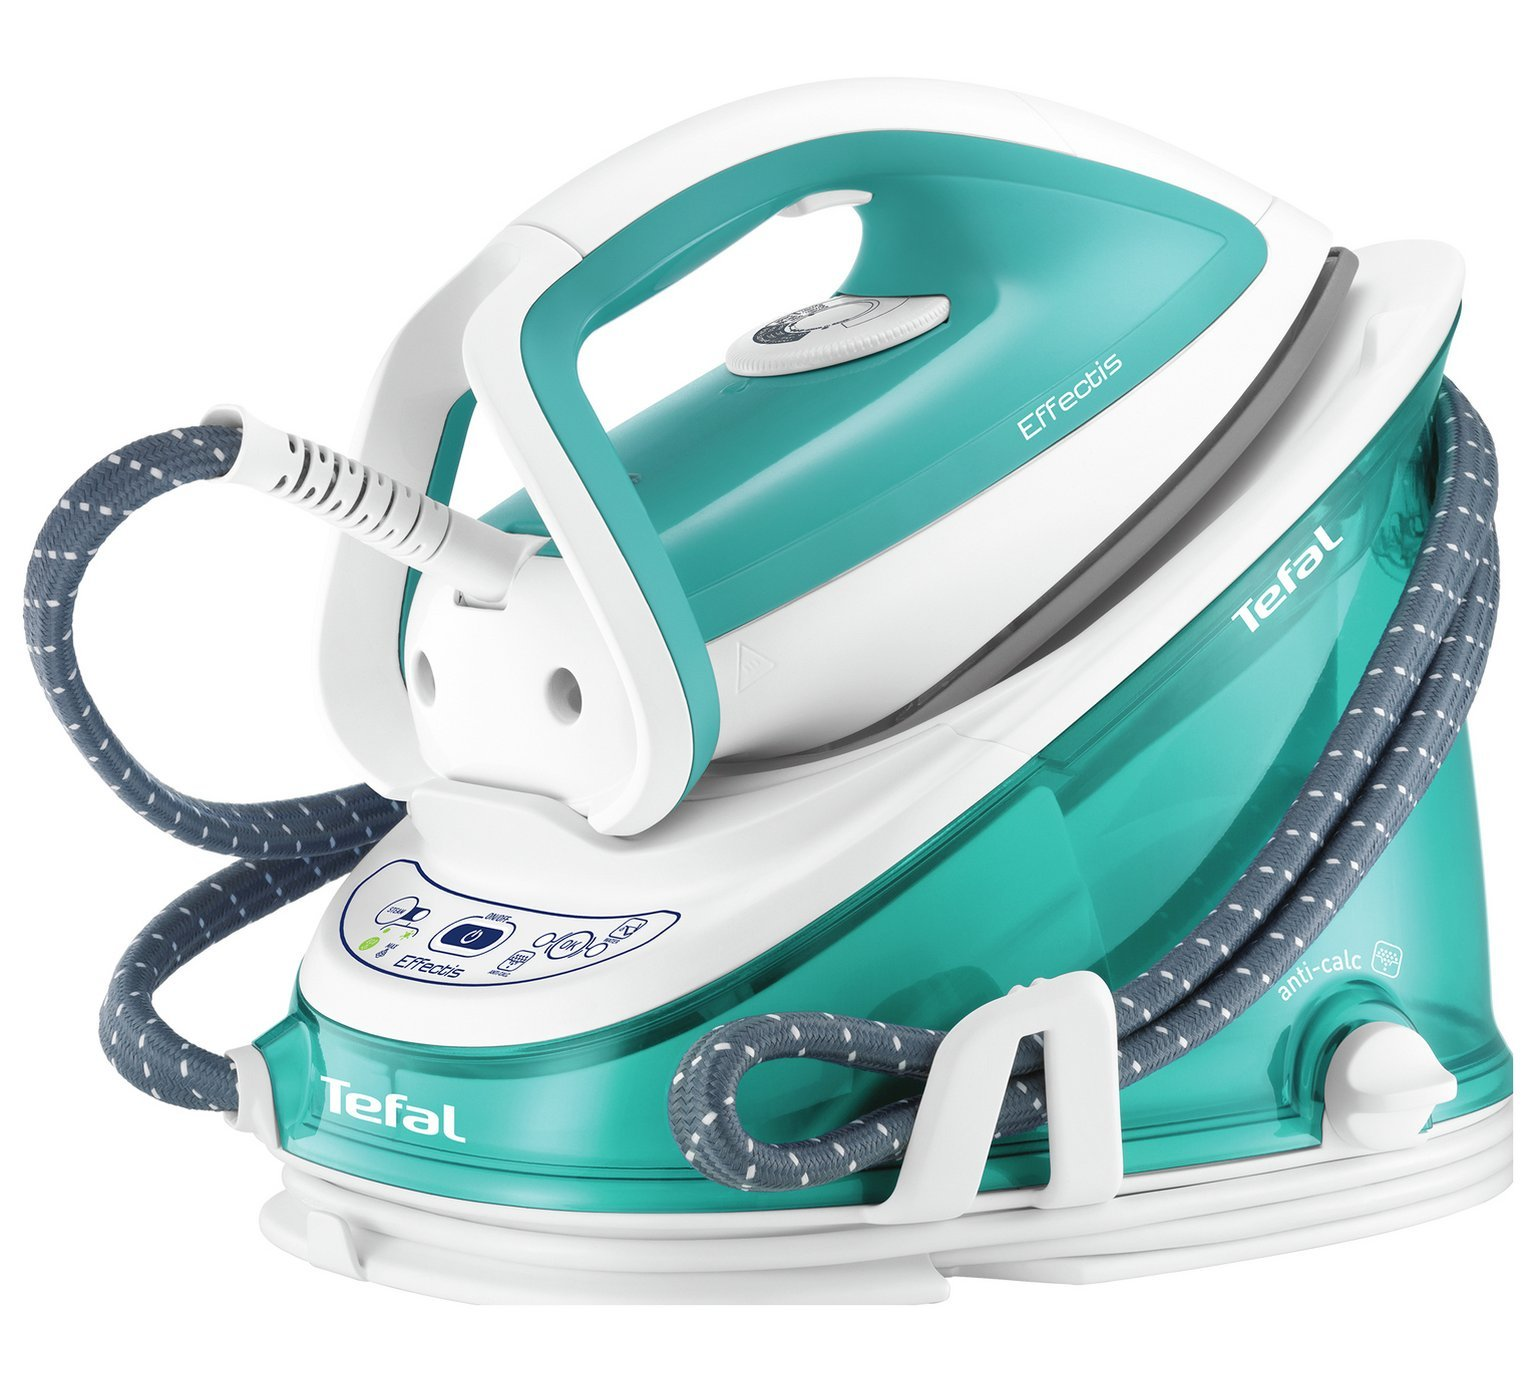 Tefal GV6721 Effectis High Pressure Steam Generator, 2200 W Best Price and Cheapest